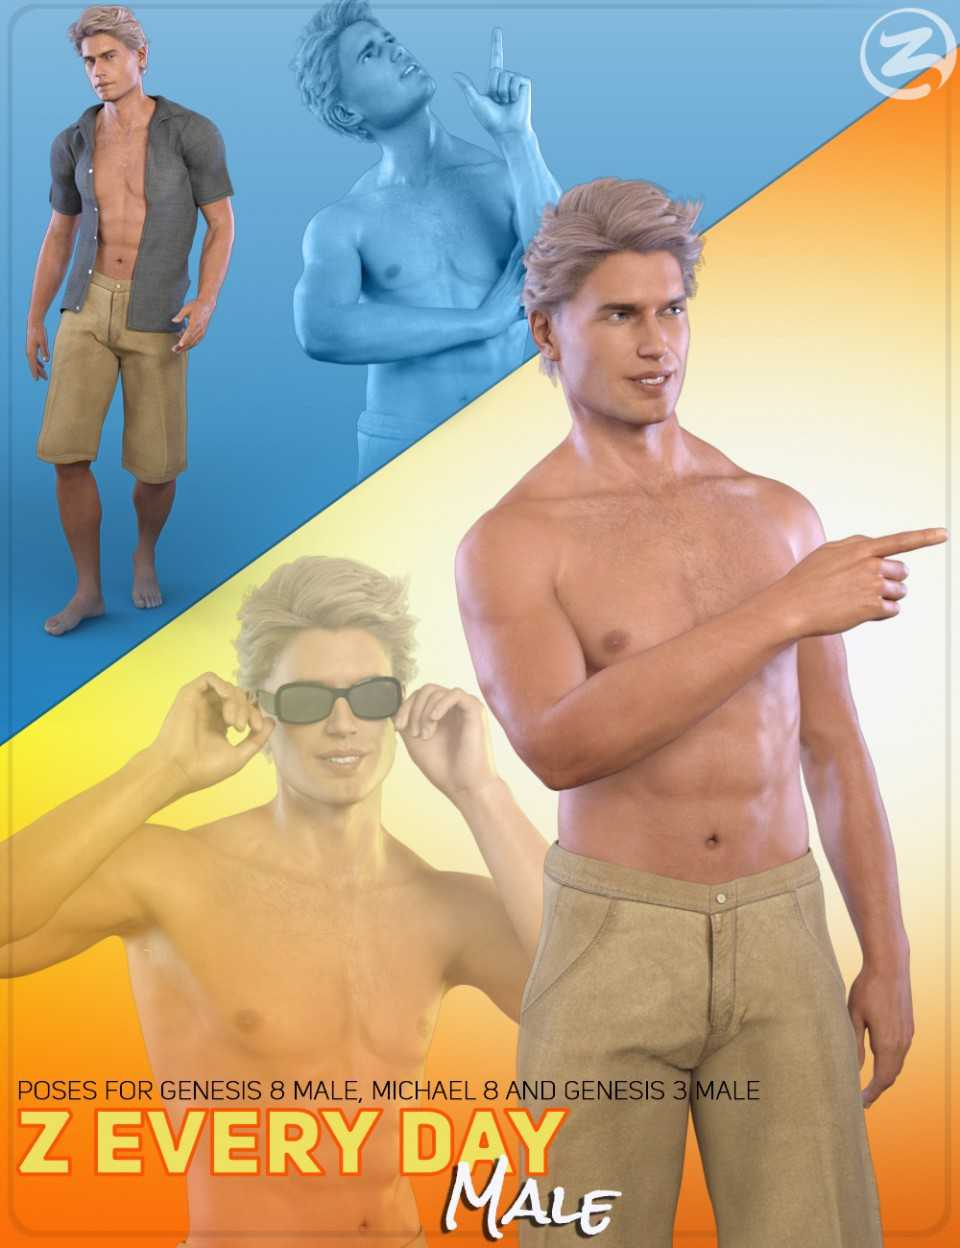 Z Everyday Male – Poses for Genesis 3 Male, Genesis 8 Male and Michael 8